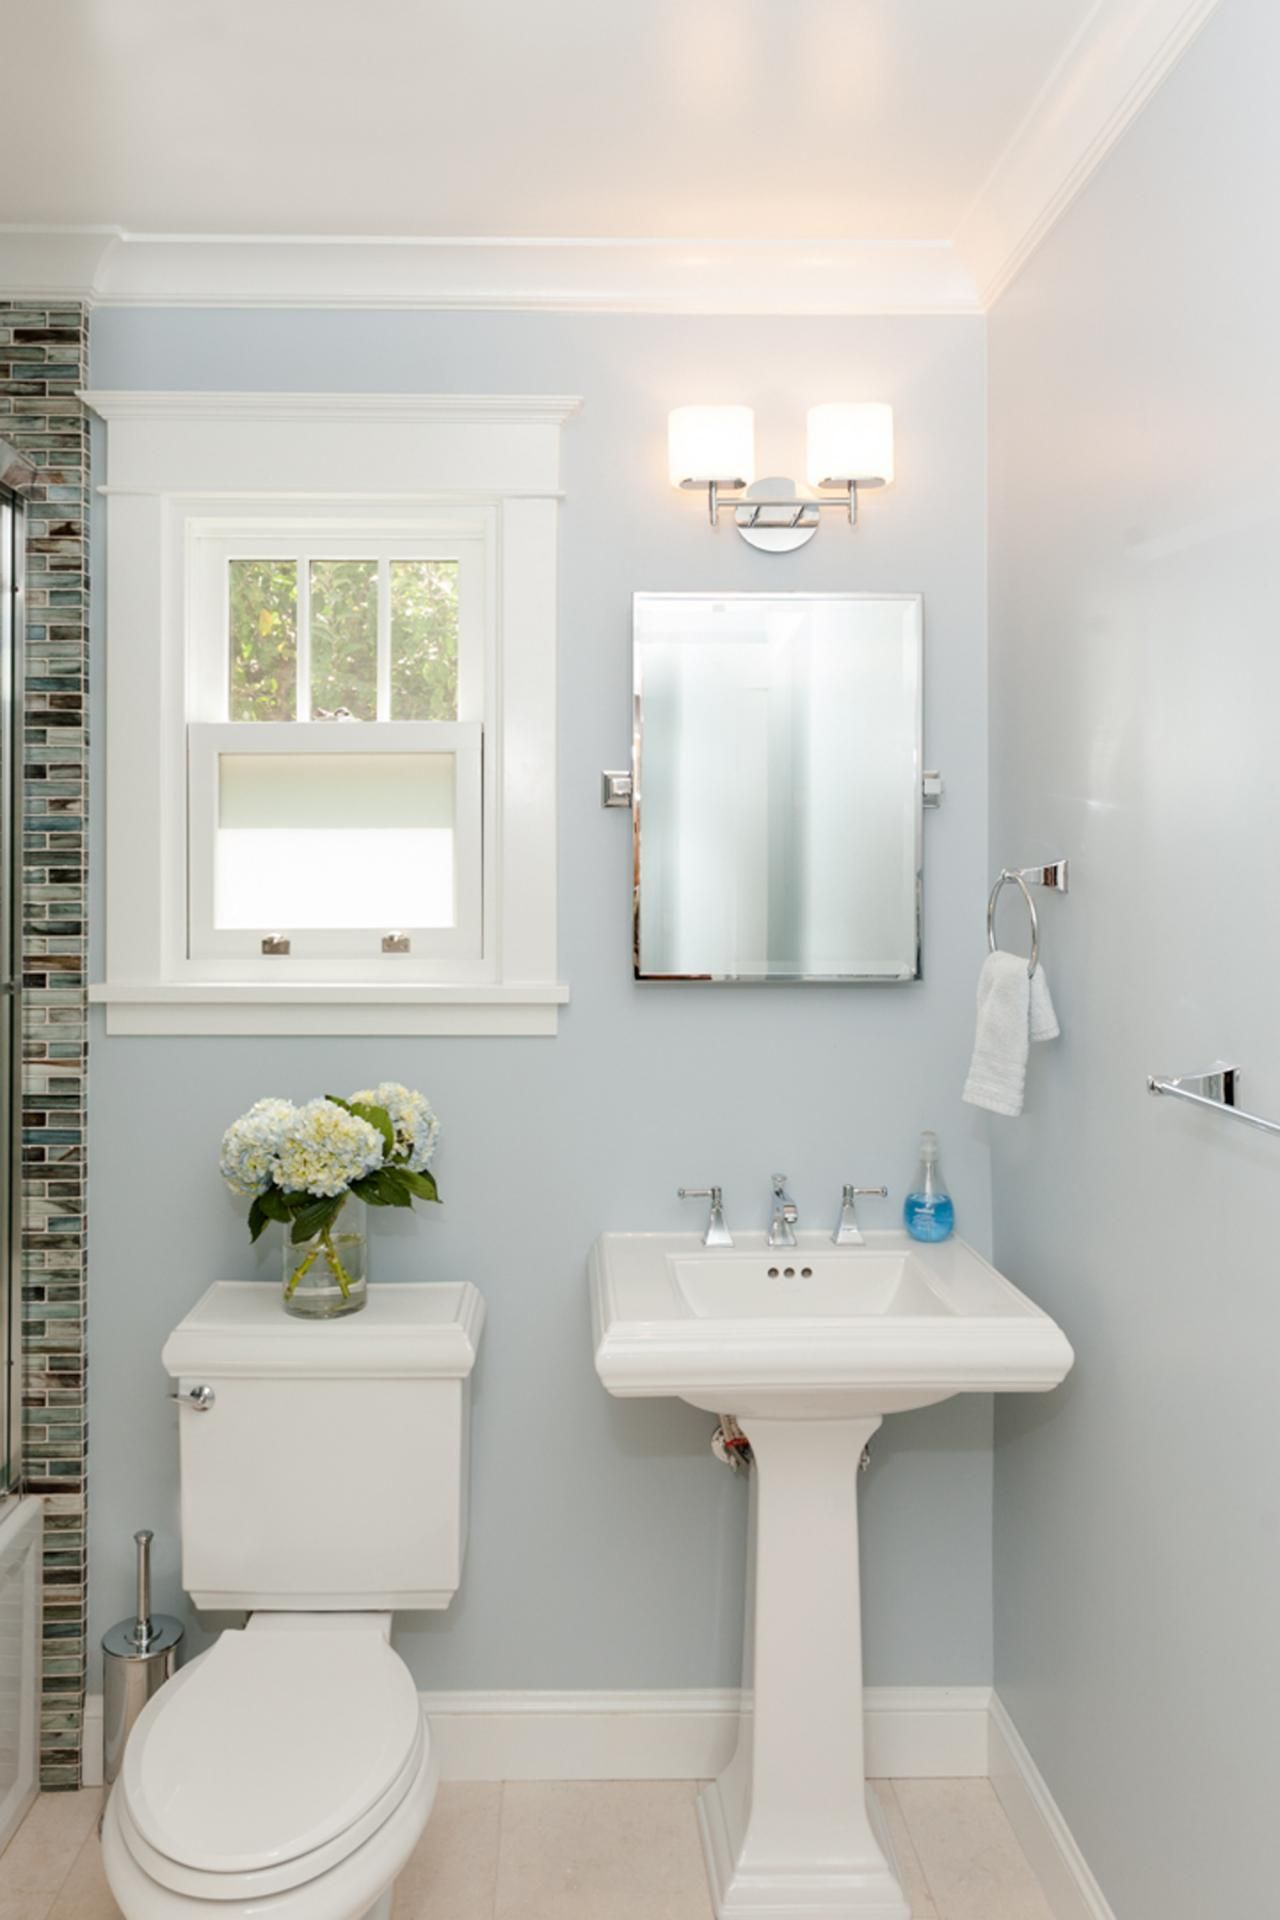 This Bathroom Keeps It Minimalistic With A Serene Wall Color And